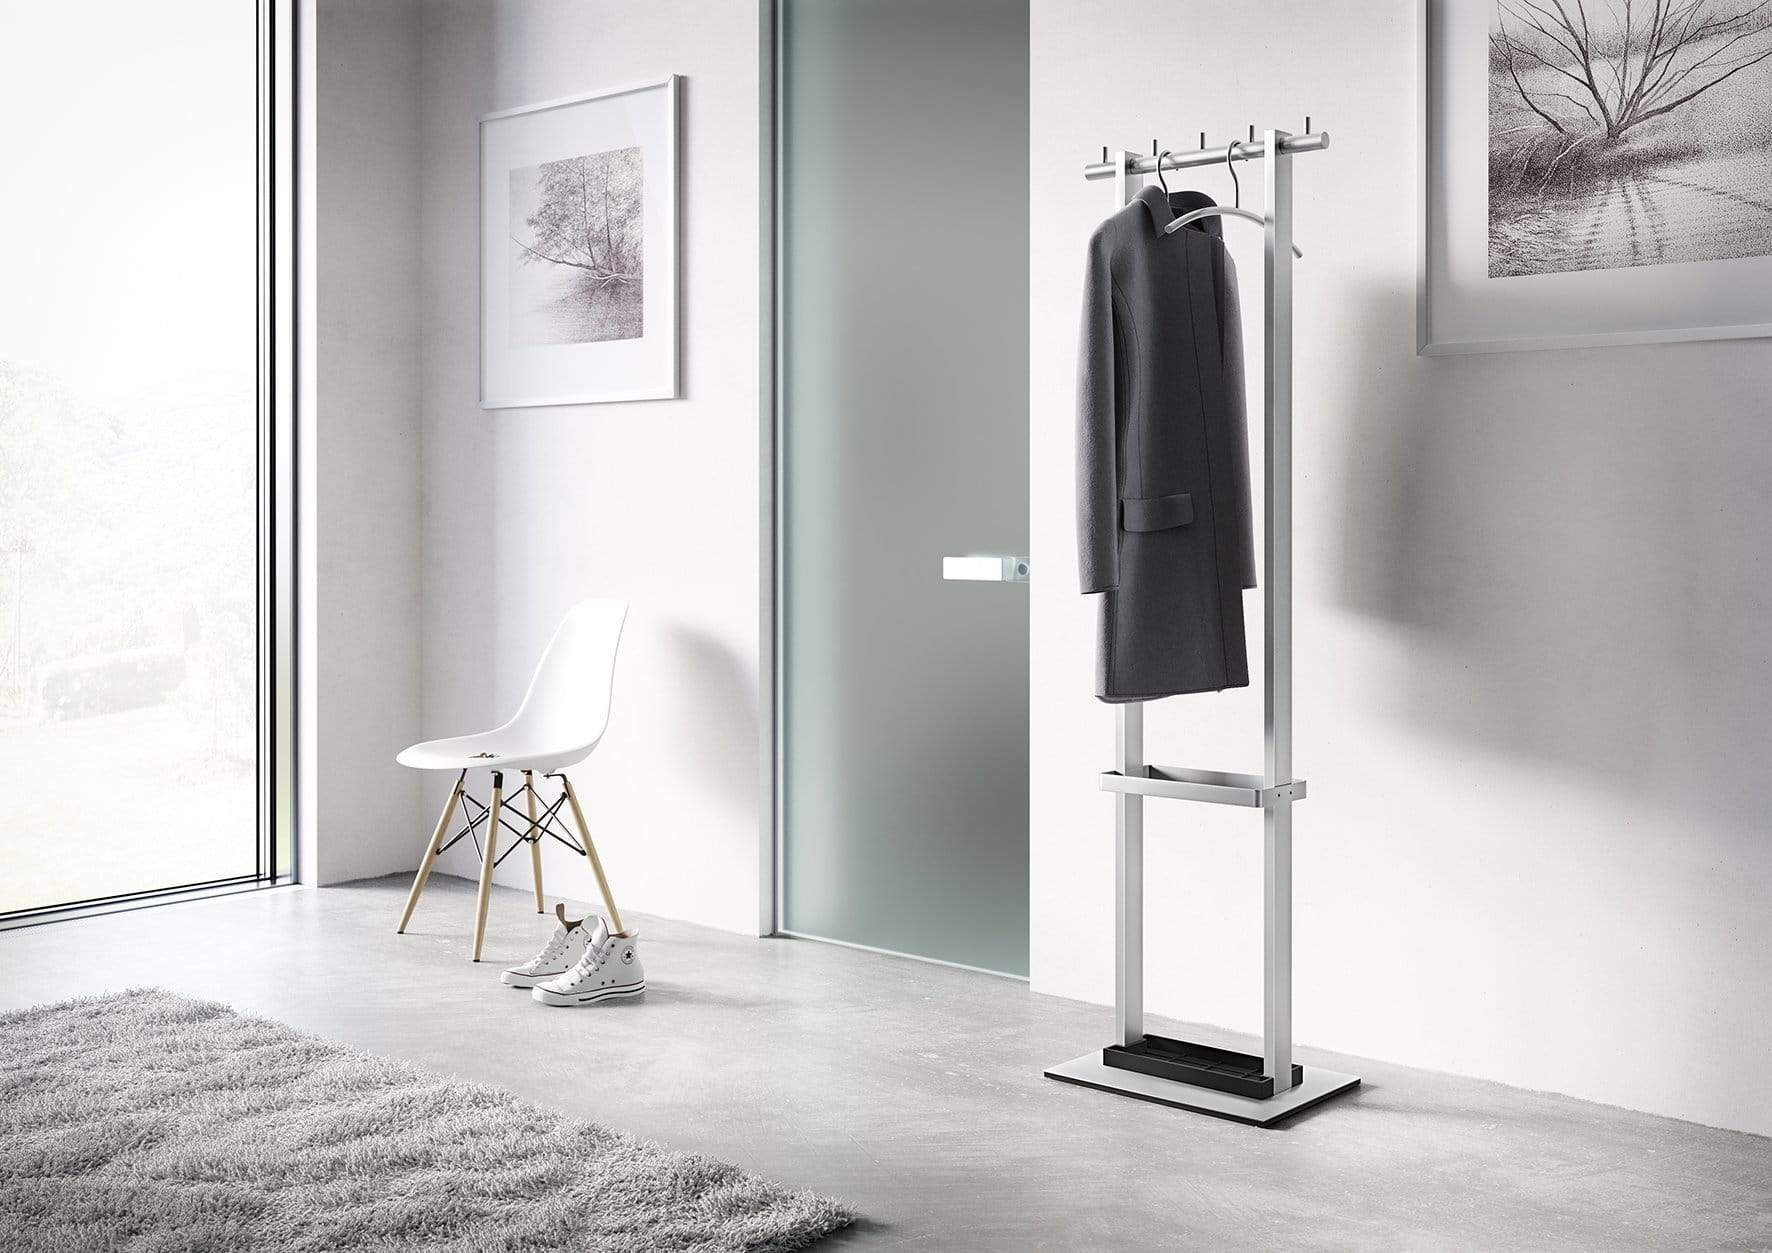 Save zack 50684 vestor coat rack 66 93 by 19 3 by 13 39